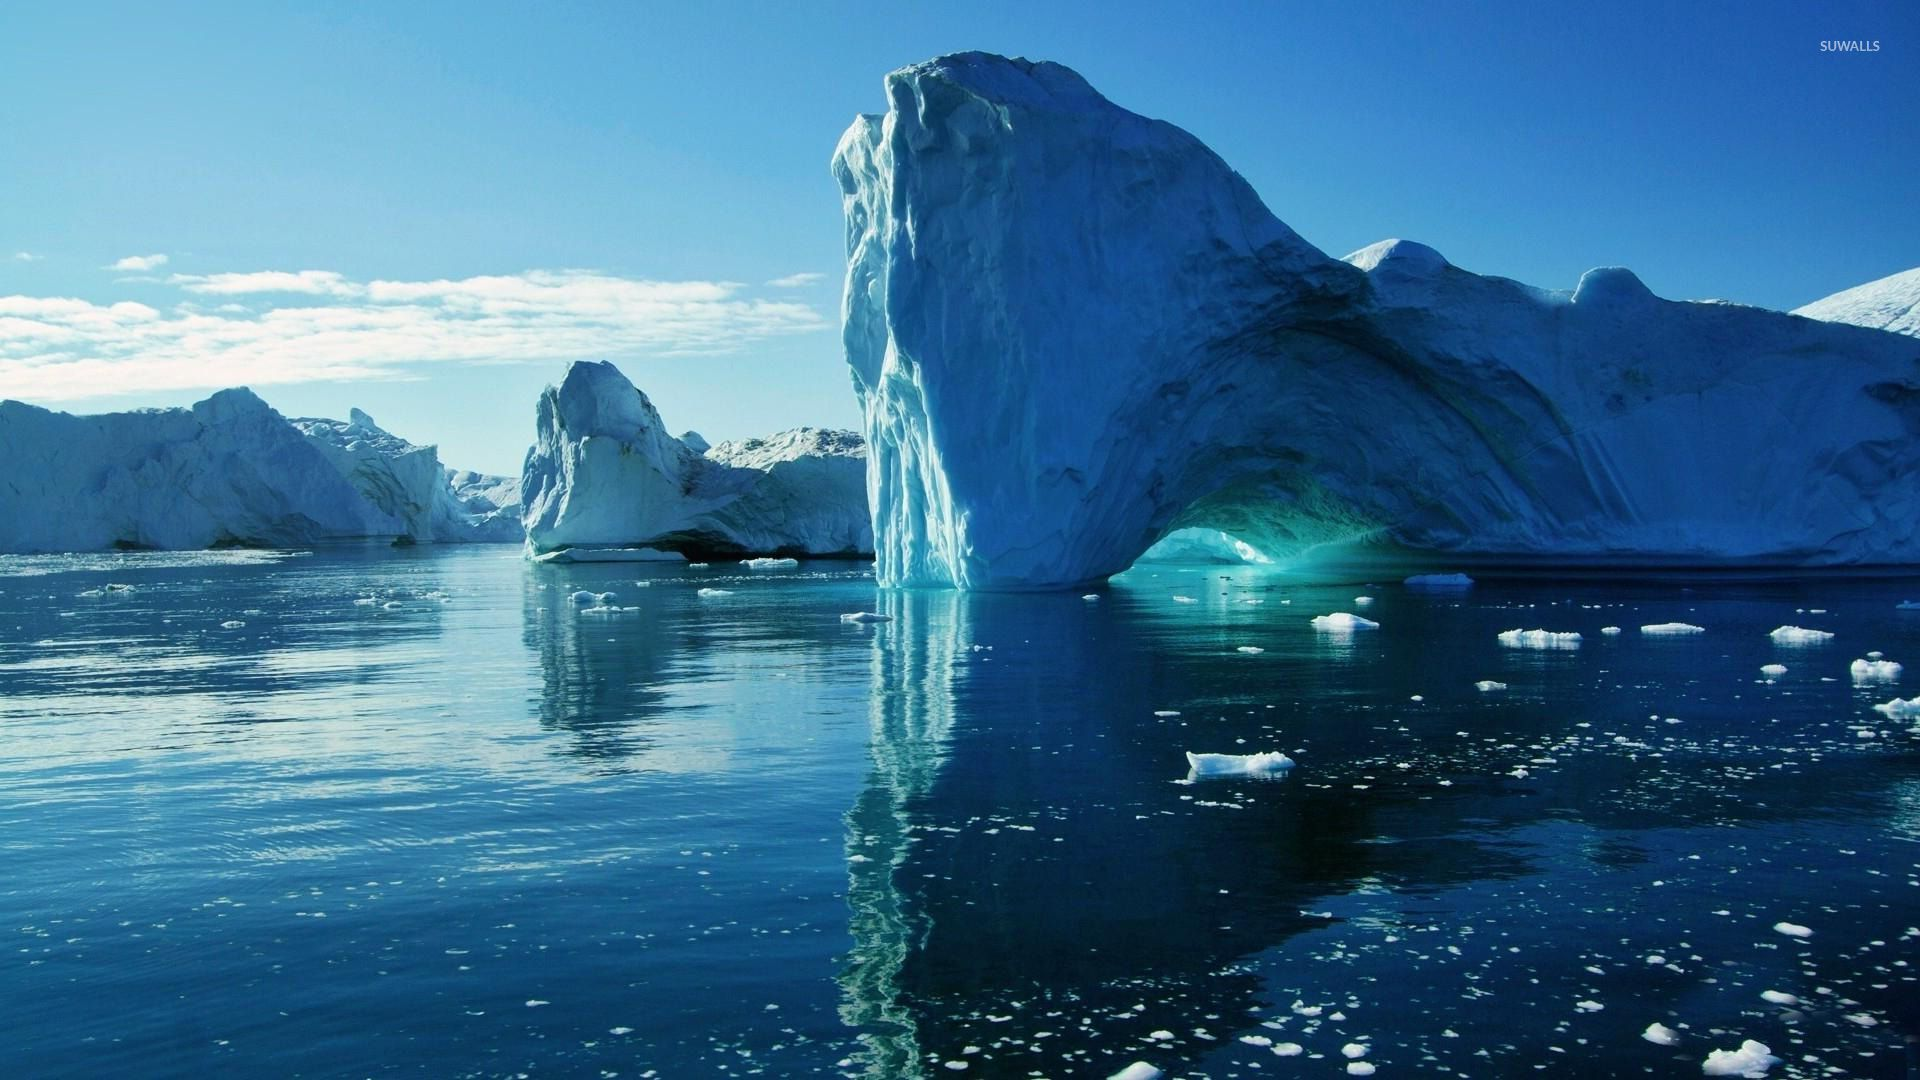 Greenland Landscape Wallpapers Top Free Greenland Landscape